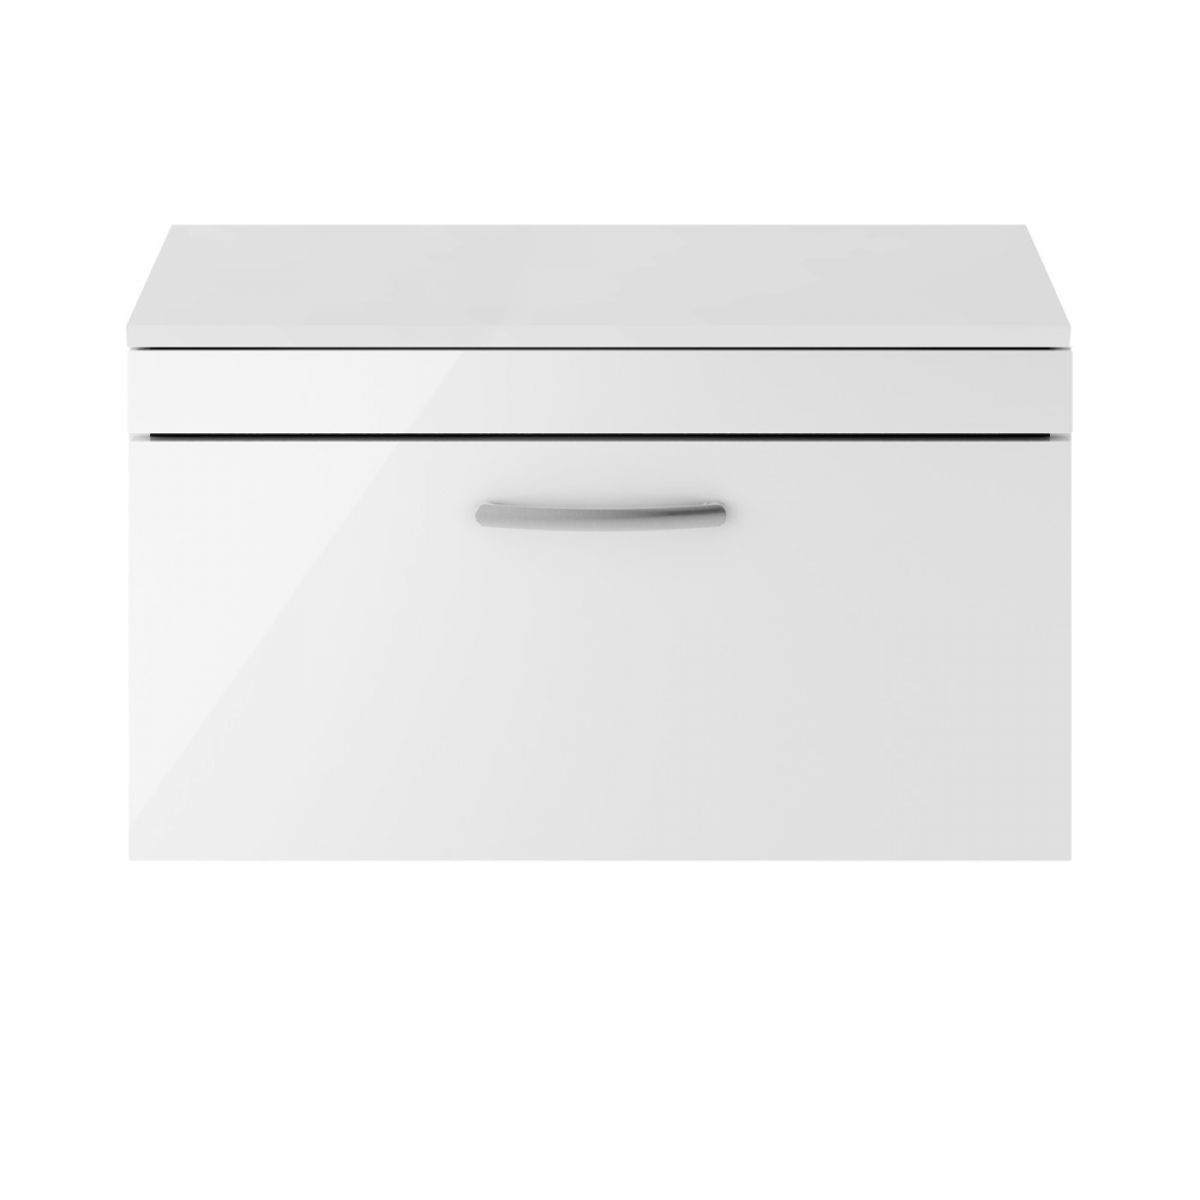 Premier Athena Gloss White 1 Drawer Wall Hung Vanity Unit 800mm with Worktop